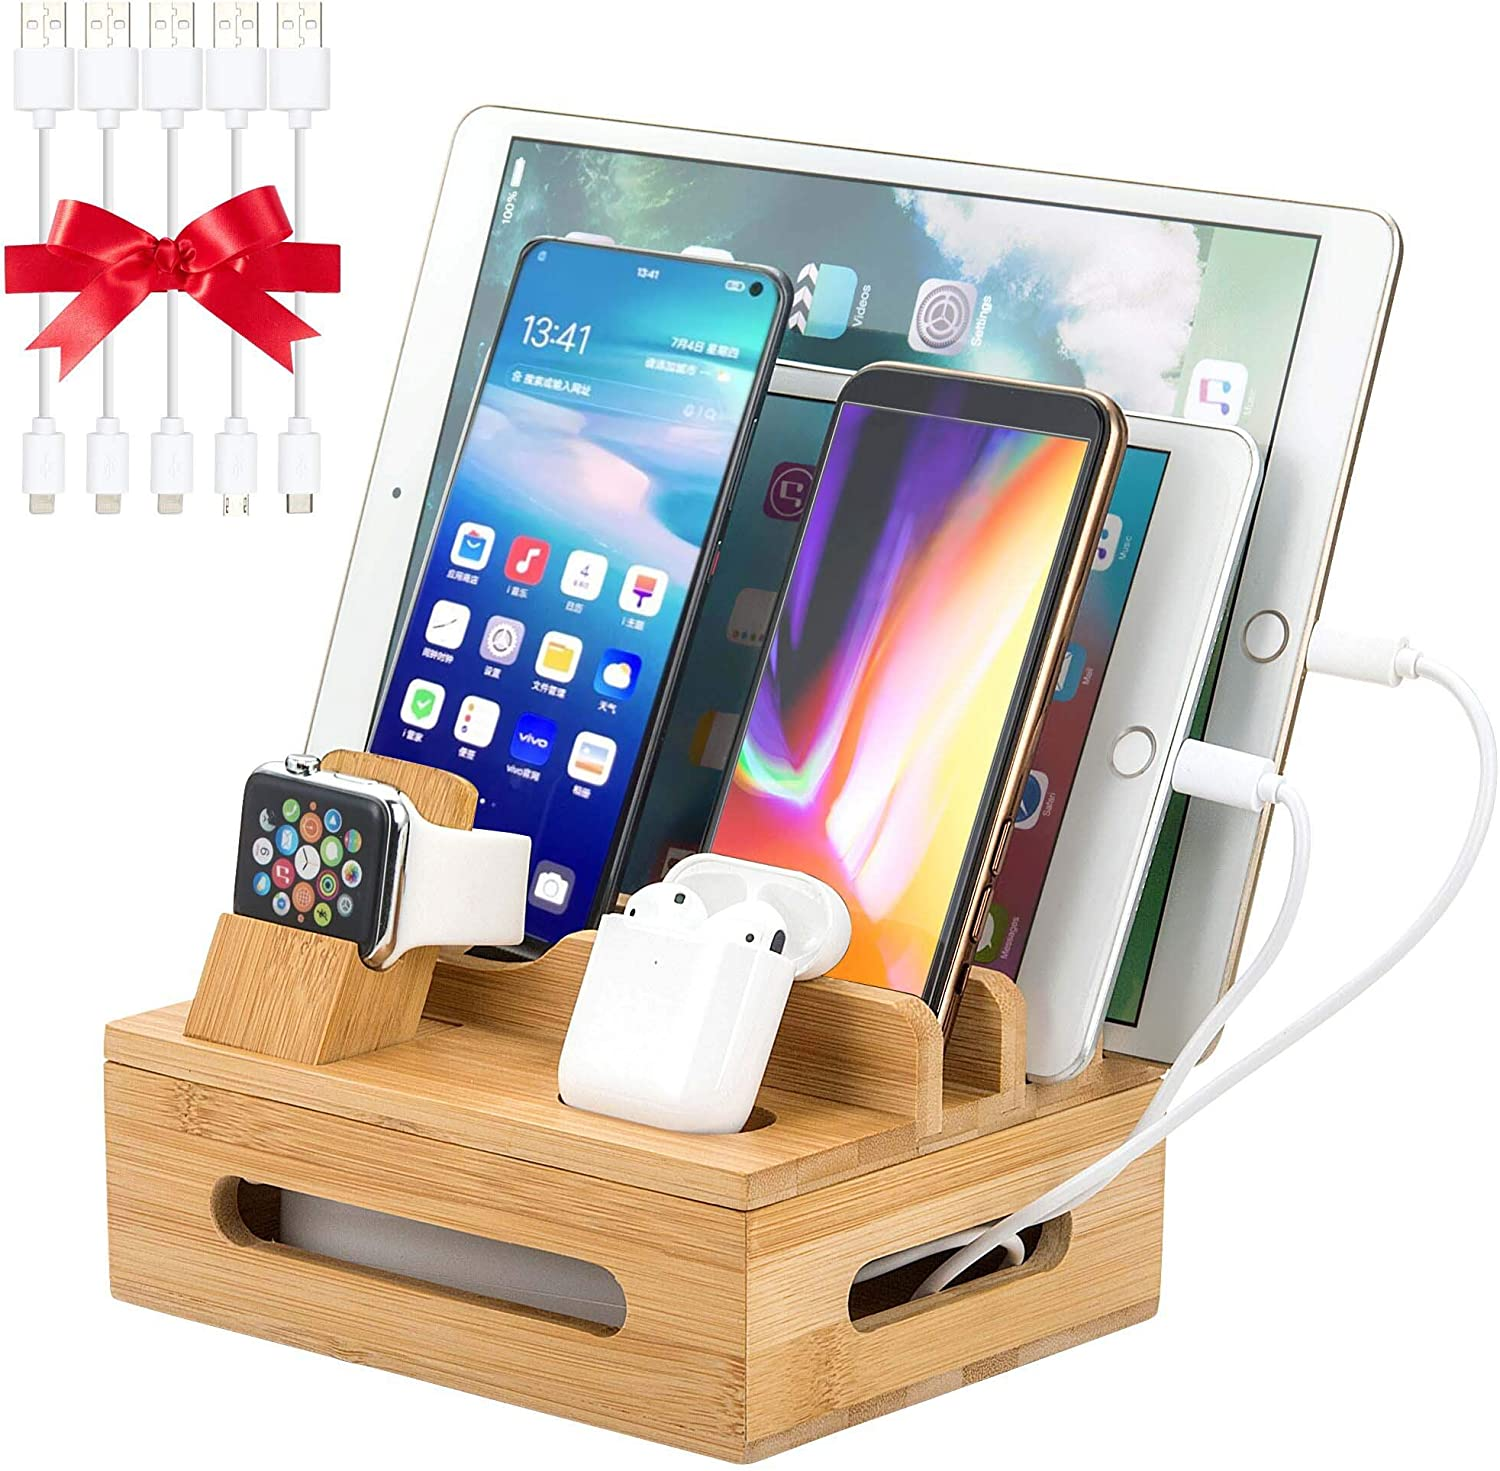 Bamboo Charging Station for Multiple Devices, Organizer Dock for iPhone iPad iWatch Airpods Samsung, Universal iOS and Android Cell Phones & Tablets, with 5 USB Cables, Device Stand, No Power Supply